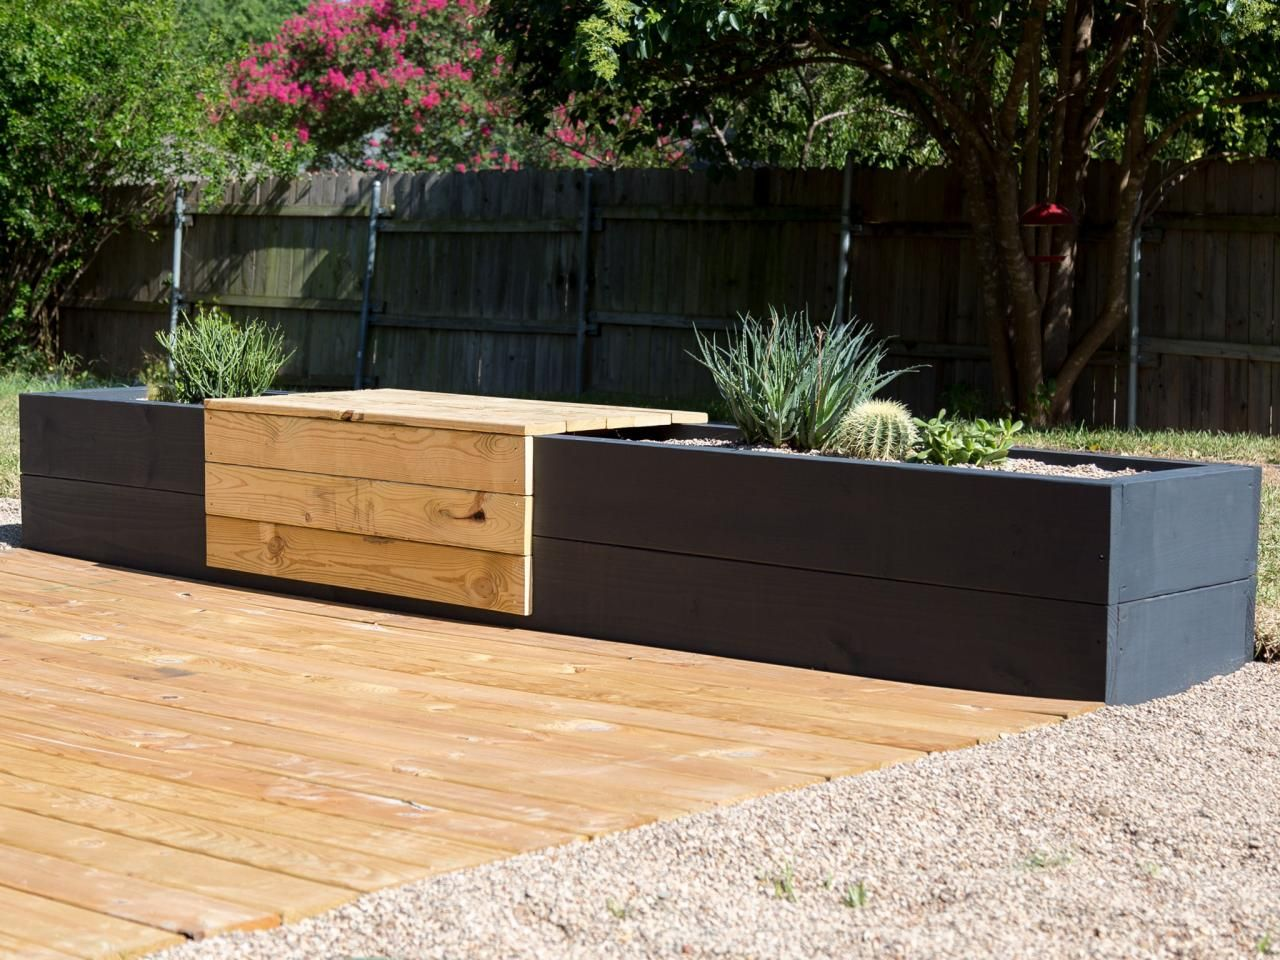 How to Make a Chic, Modern Planter Bench